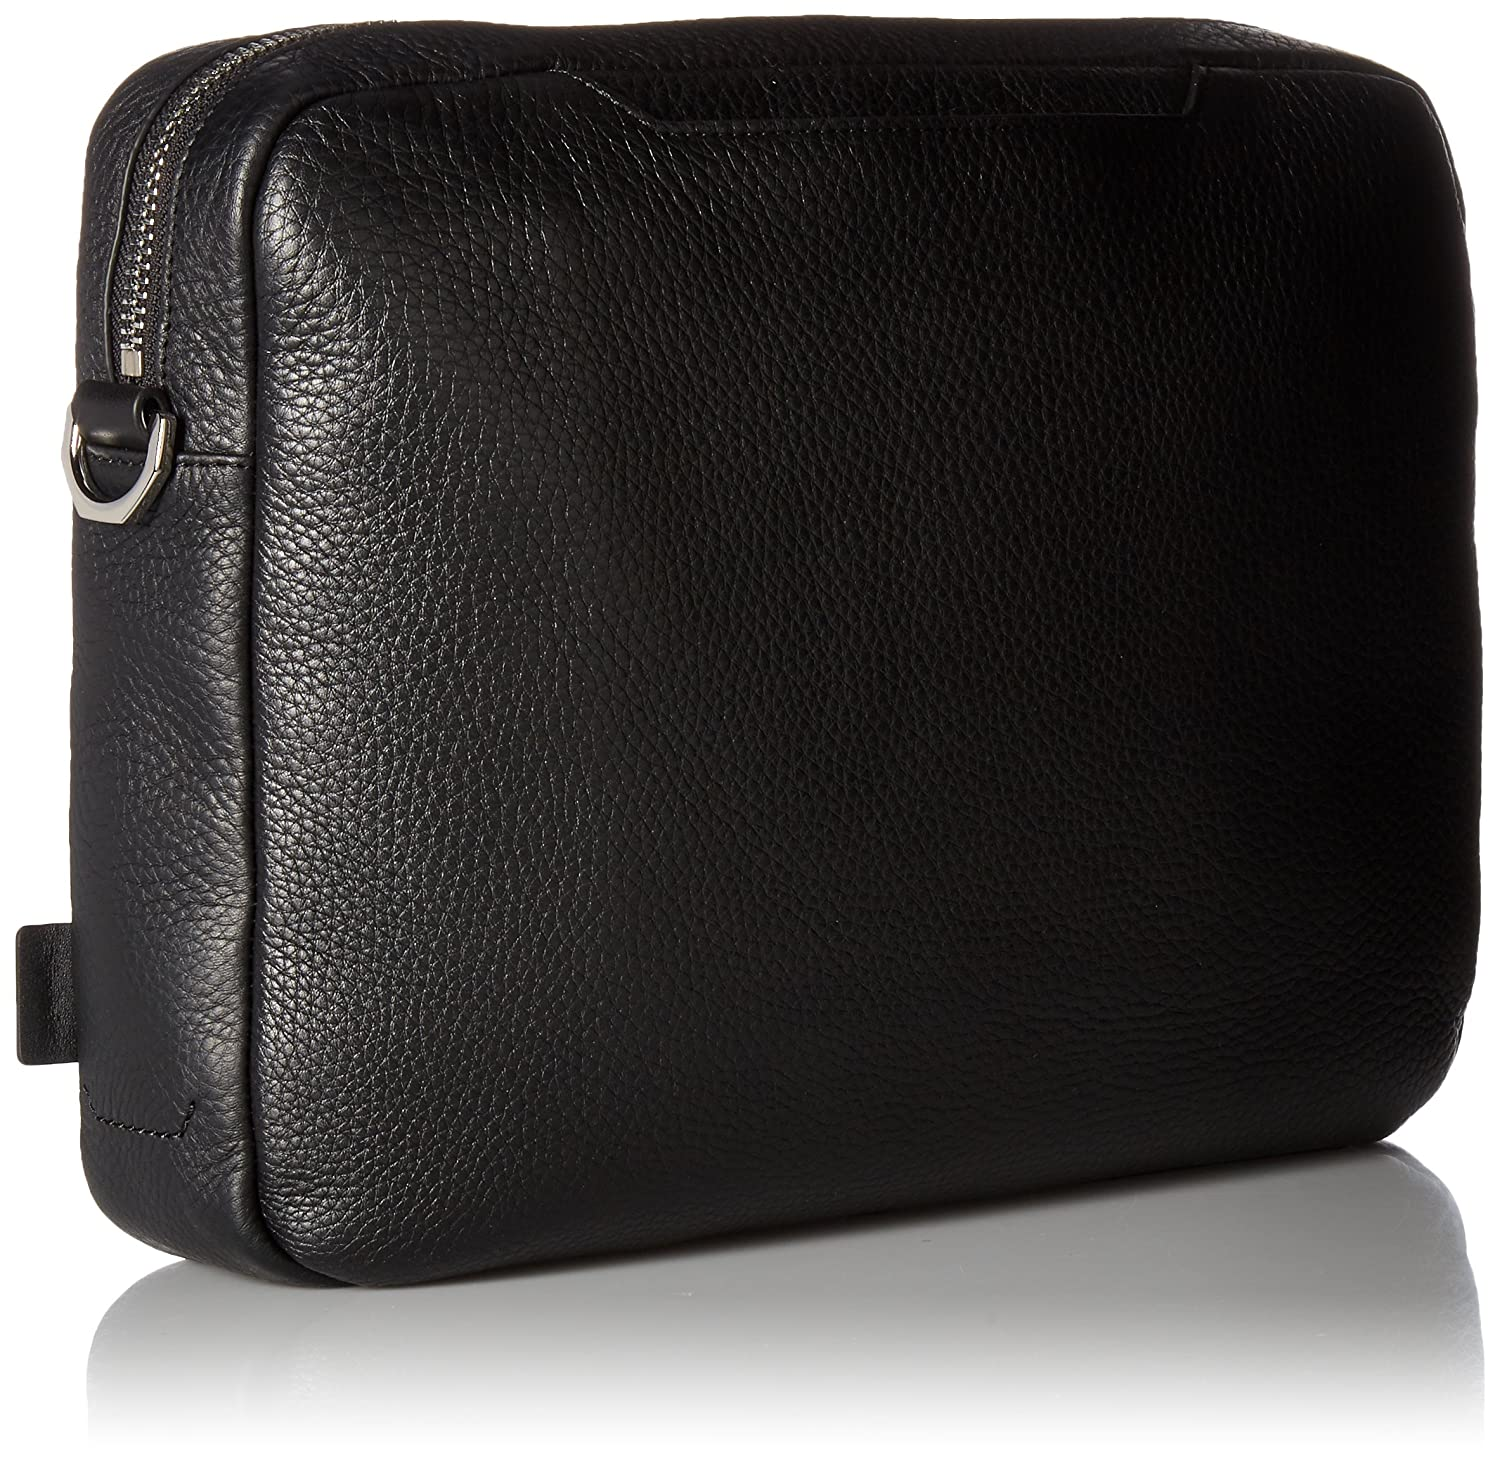 398d6815e82 Amazon.com | ECCO Eday L Messenger, Black | Messenger Bags